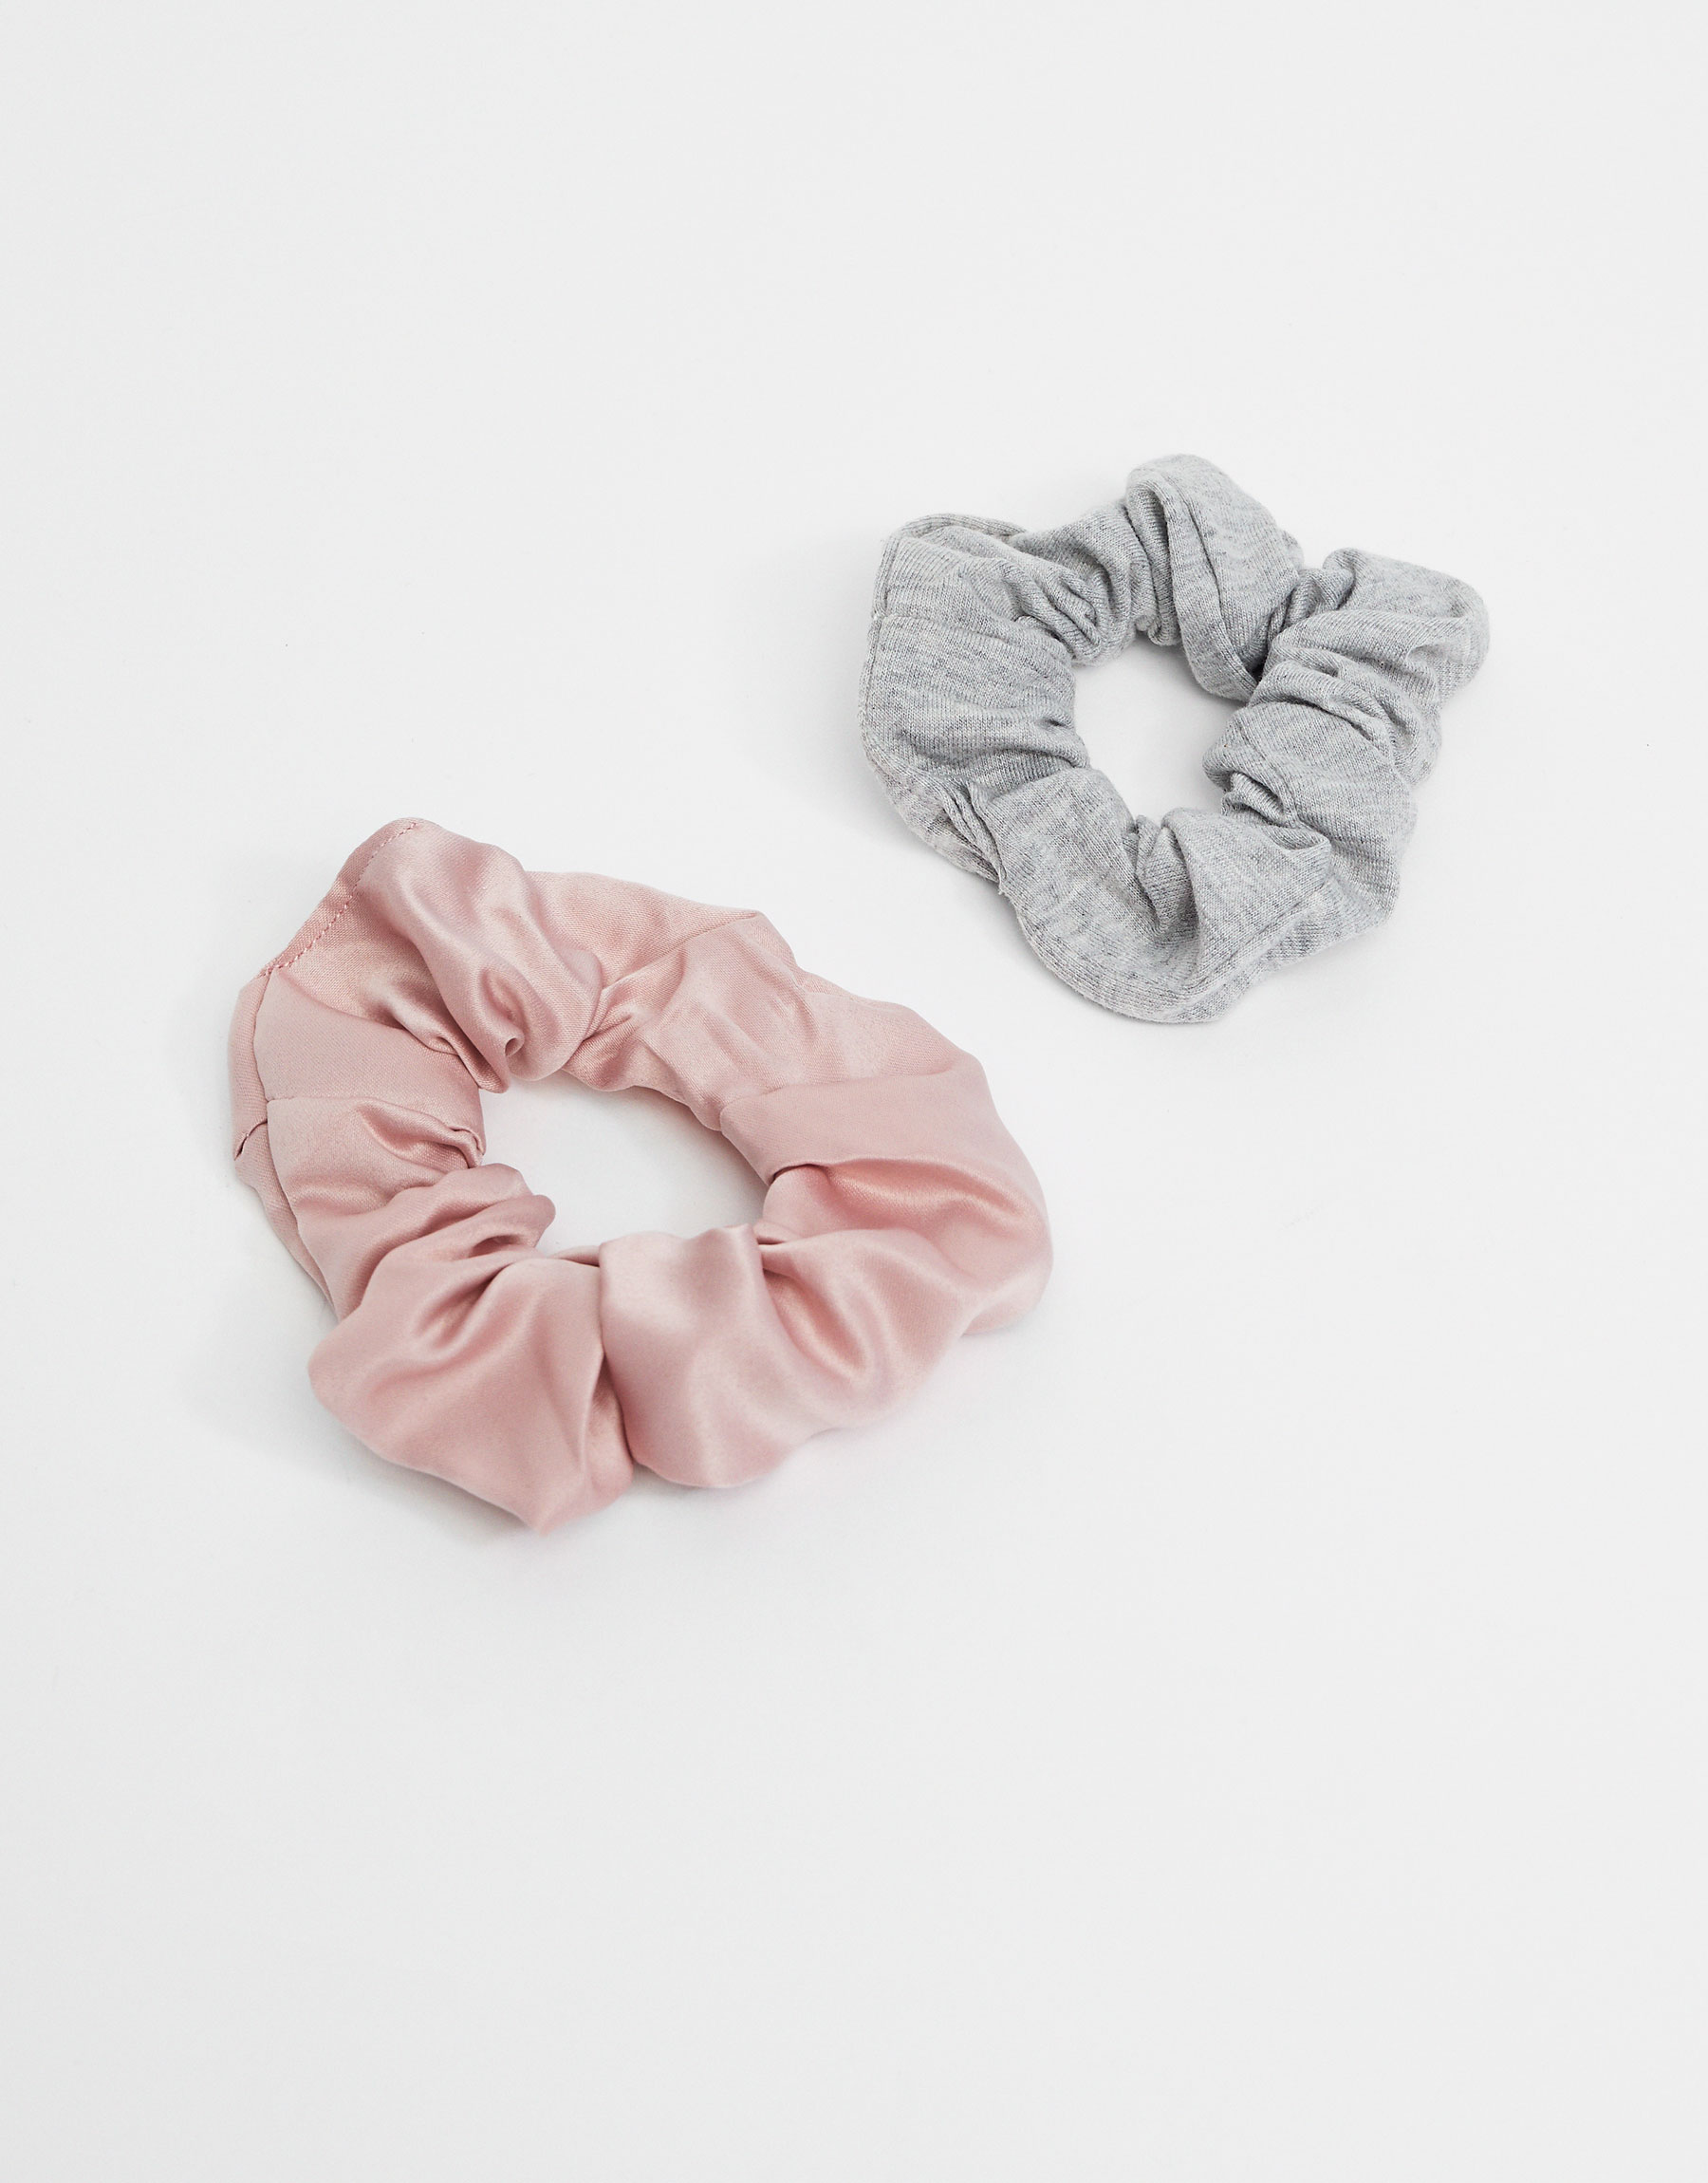 2-Pack of grey and pink hair ties